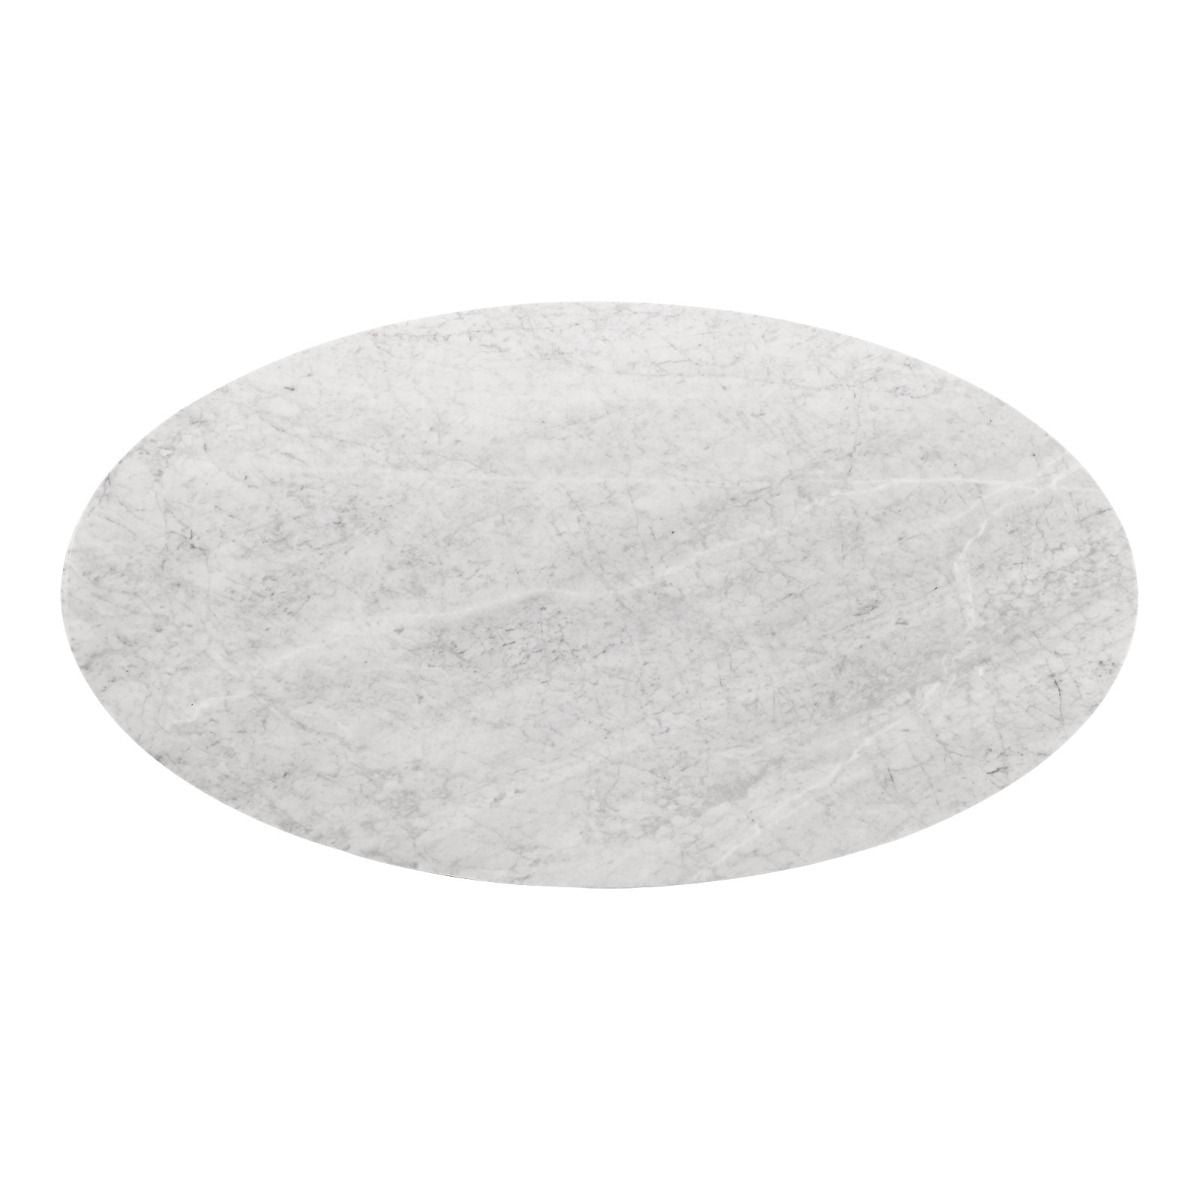 "Bungalow 5 - STOCKHOLM 79"" OVAL DINING TABLE TOP, WHITE (BASE SOLD SEPARATELY)"